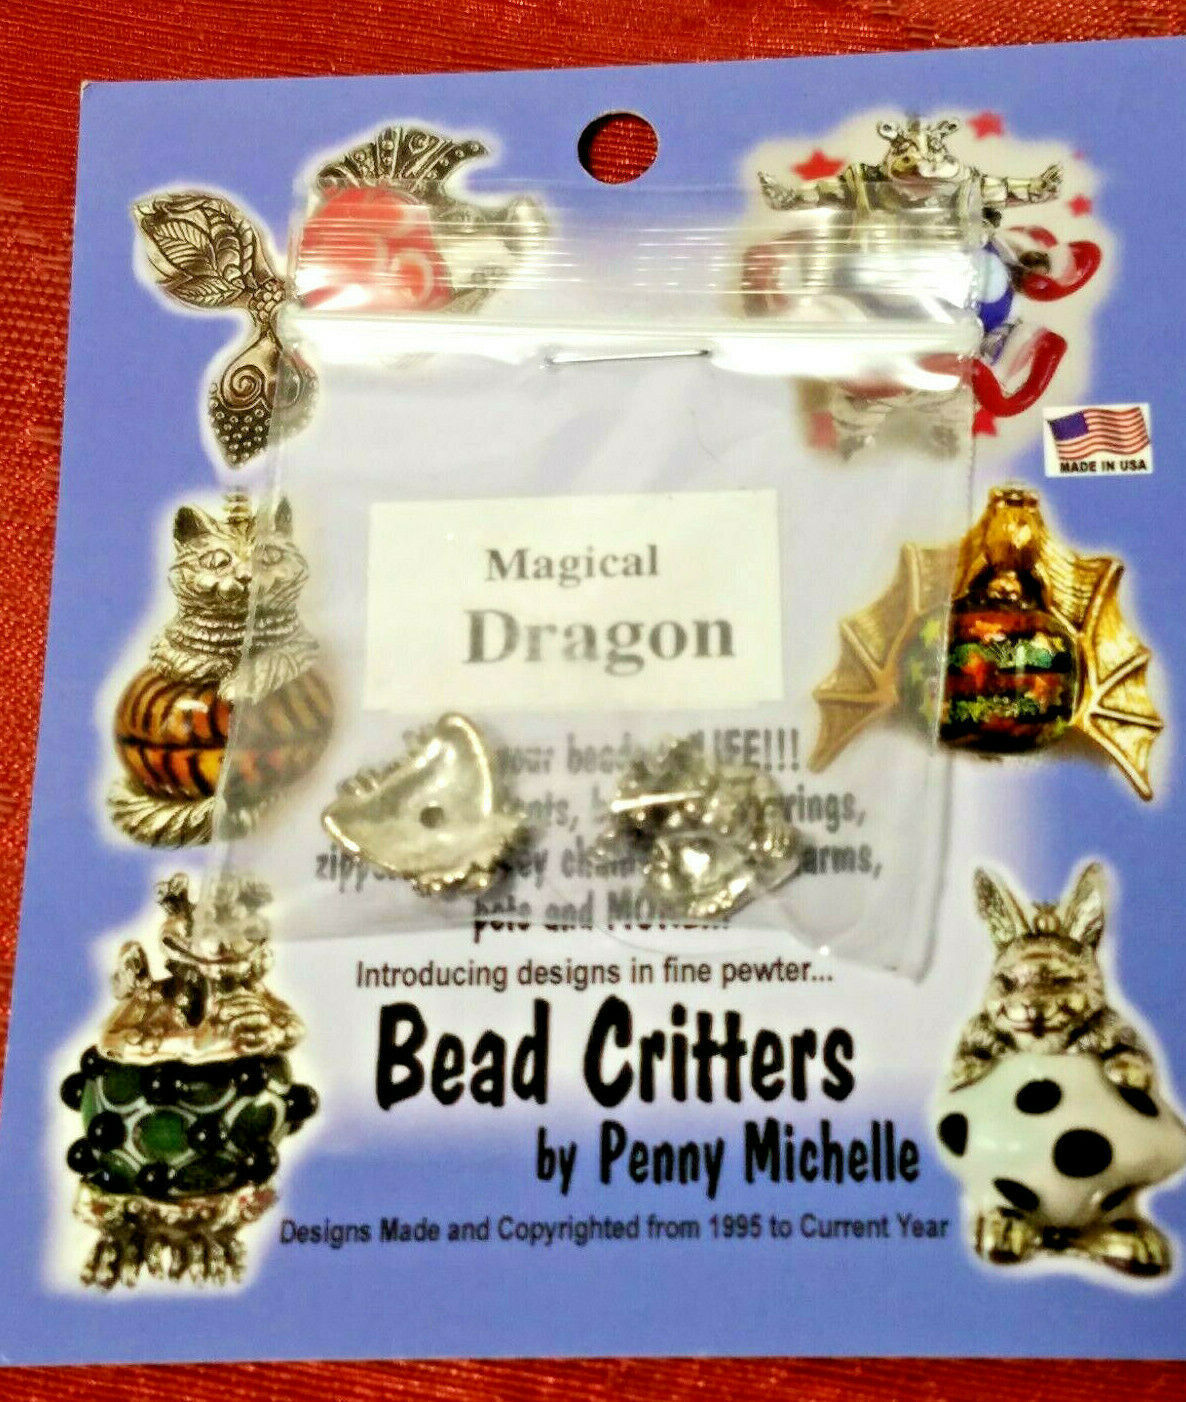 VINTAGE DRAGON BEAD CRITTERS BEAD WRAP BY PENNY MICHELLE 1995 SILVERTONE